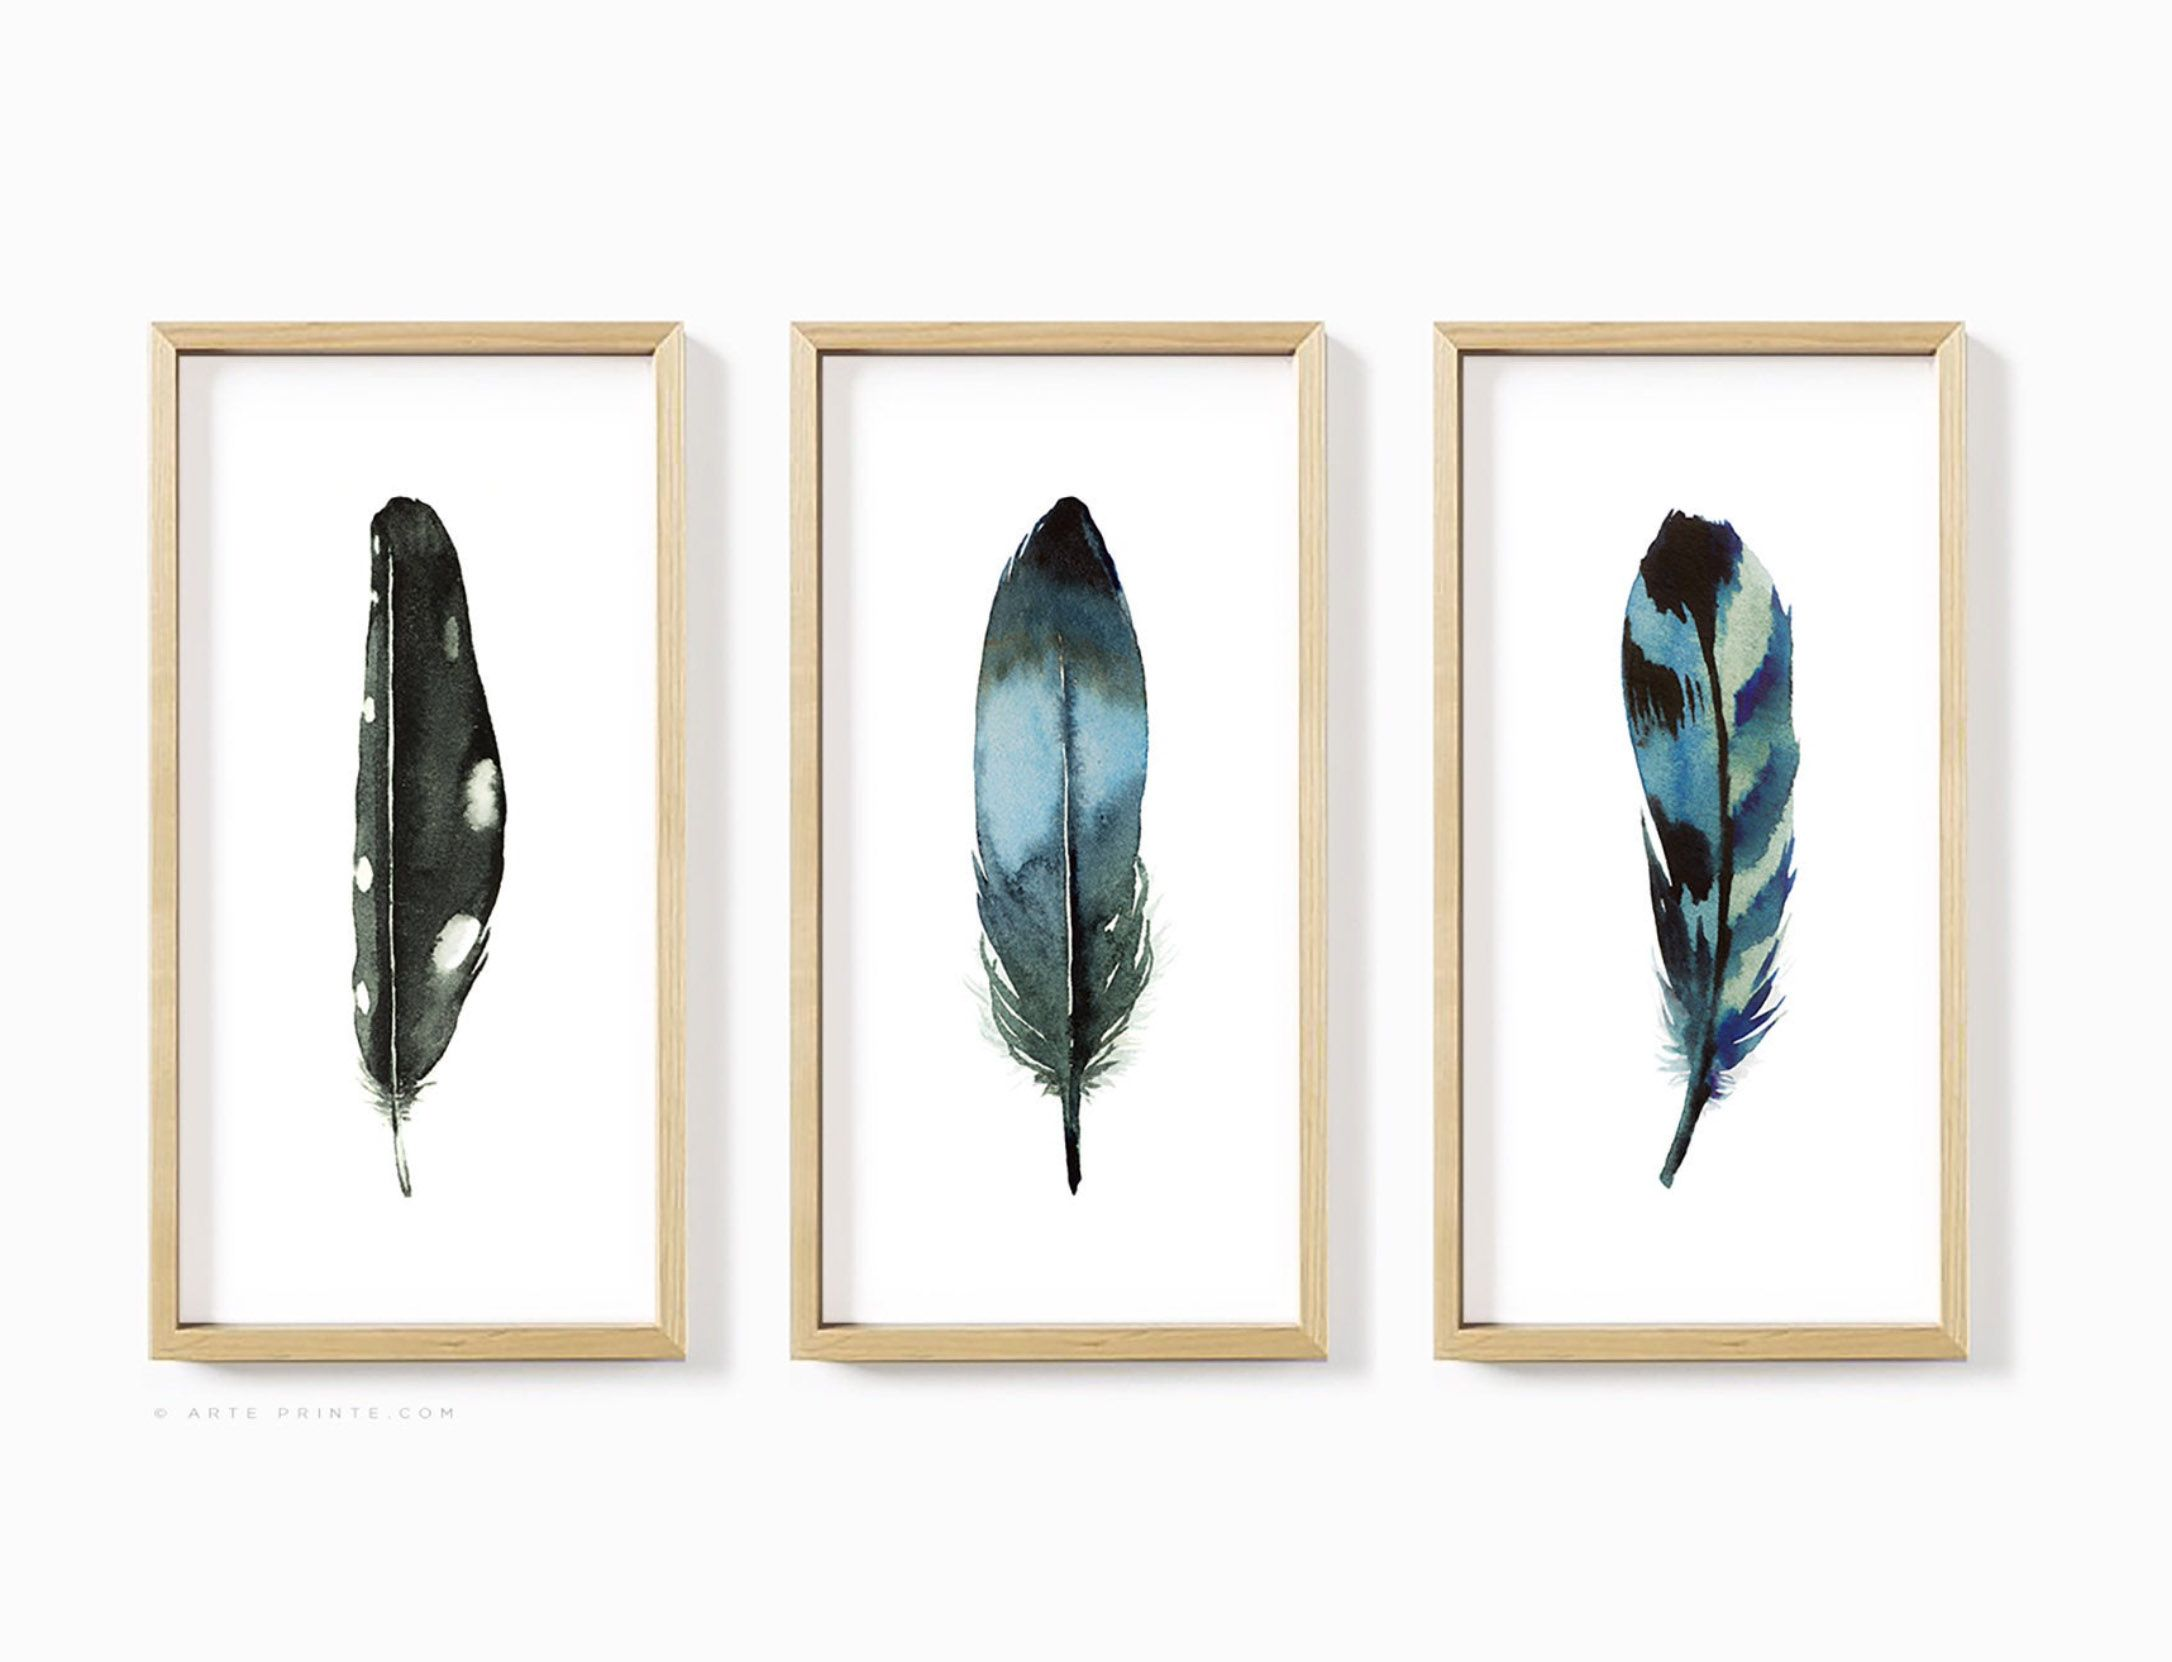 Feather Wall Art Set Of 3 Prints Extra Large Narrow Boho Etsy Feather Wall Art Wall Art Sets Feather Wall